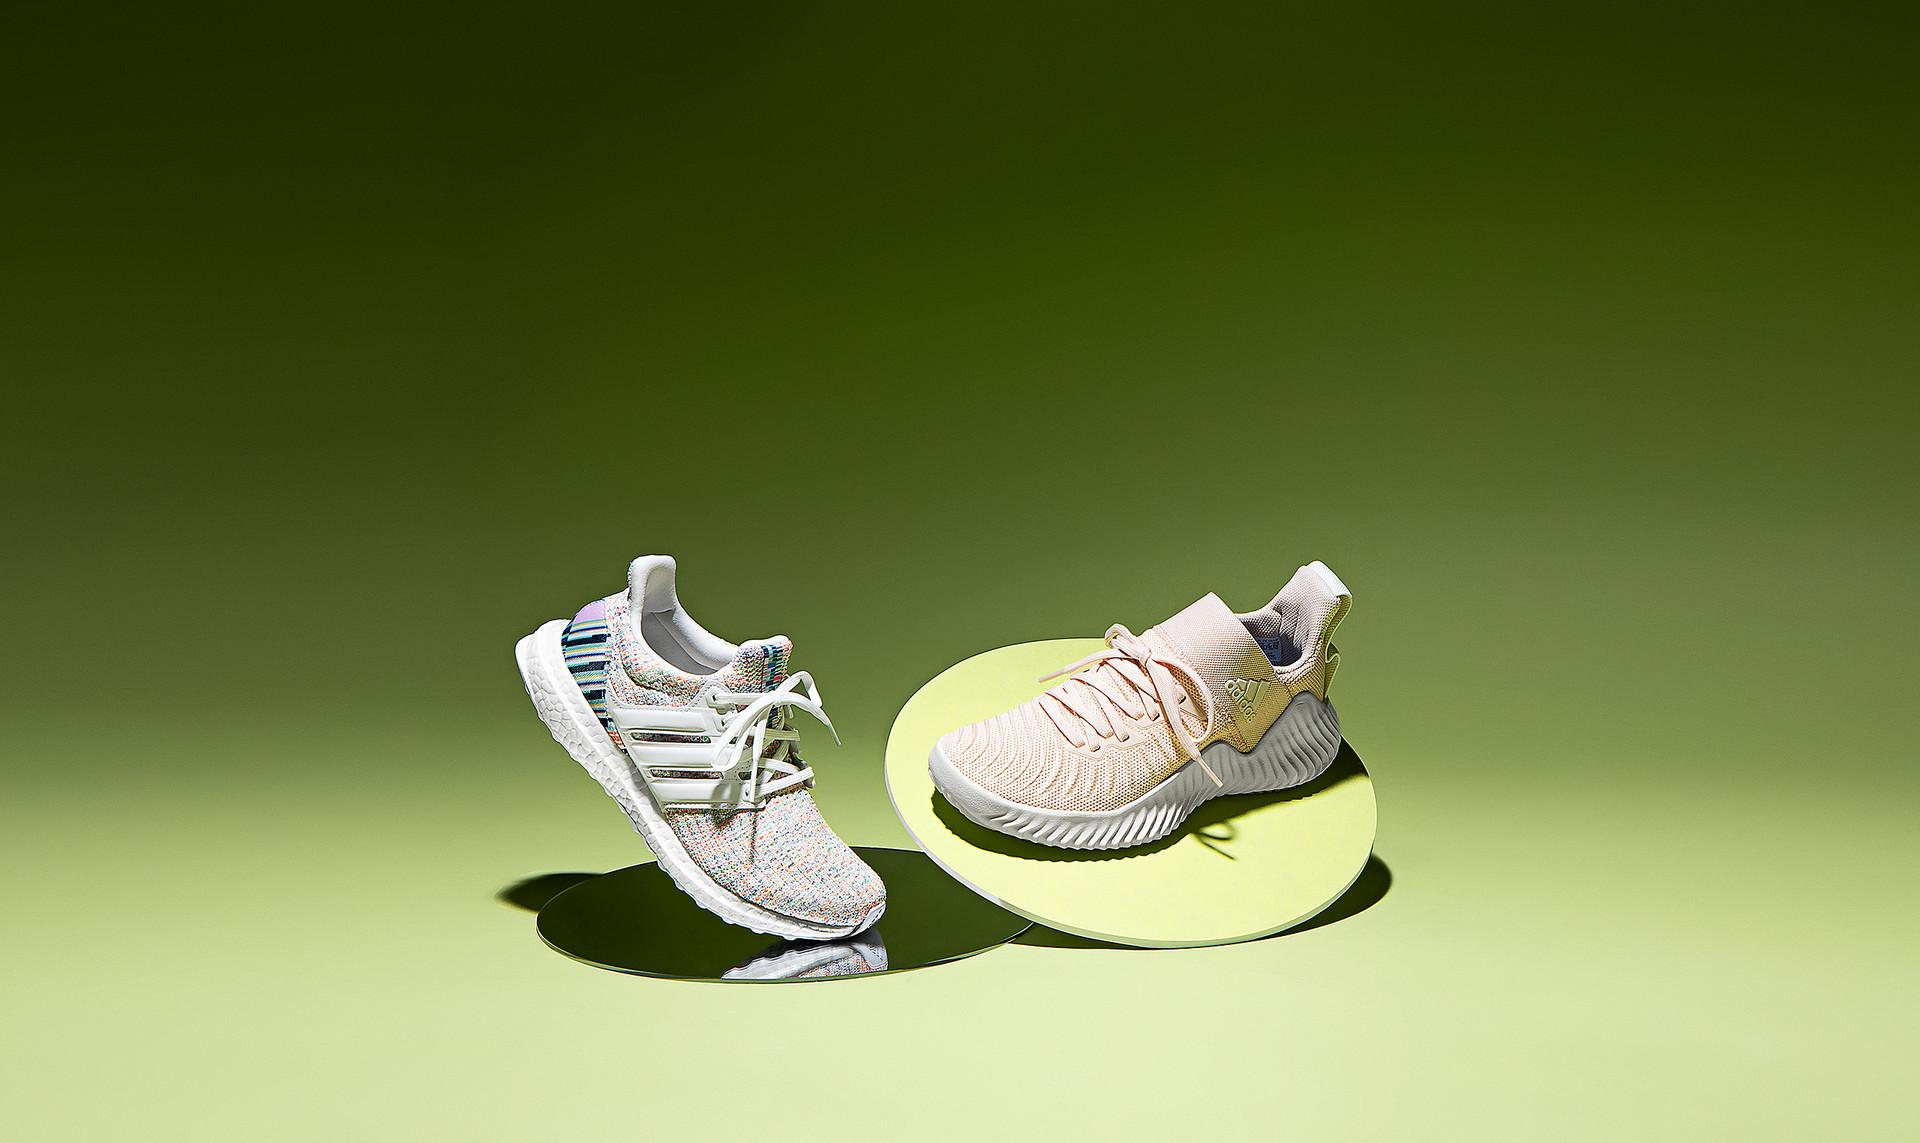 adidas:Women's Shoes